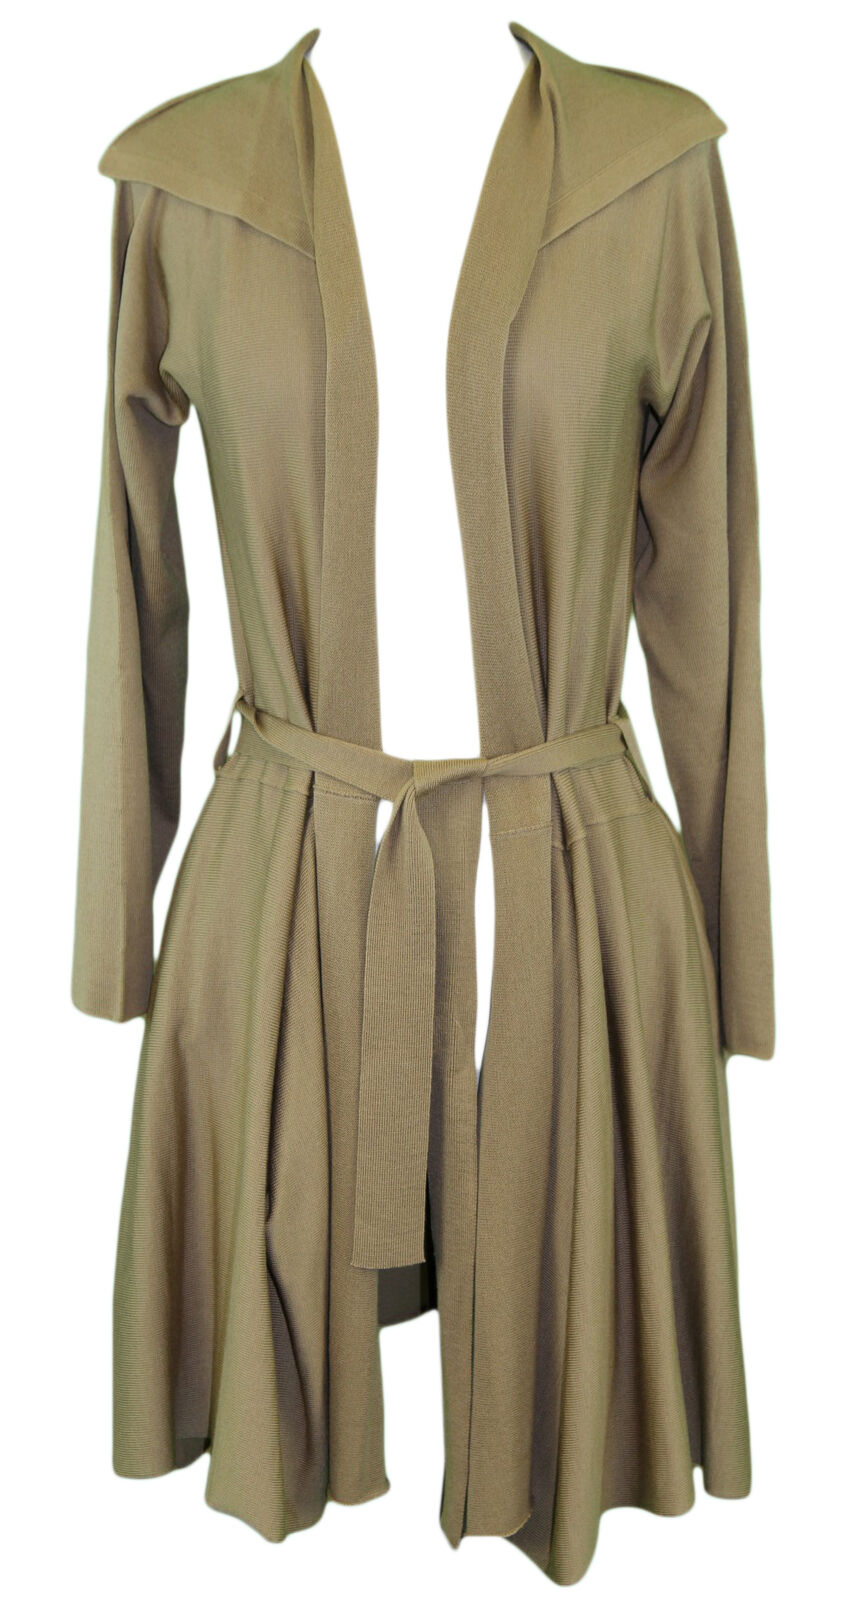 94f89696d PIER ANTONIO GASPARI Women s Camel Belted Fly Cardigan NWT Duster ...